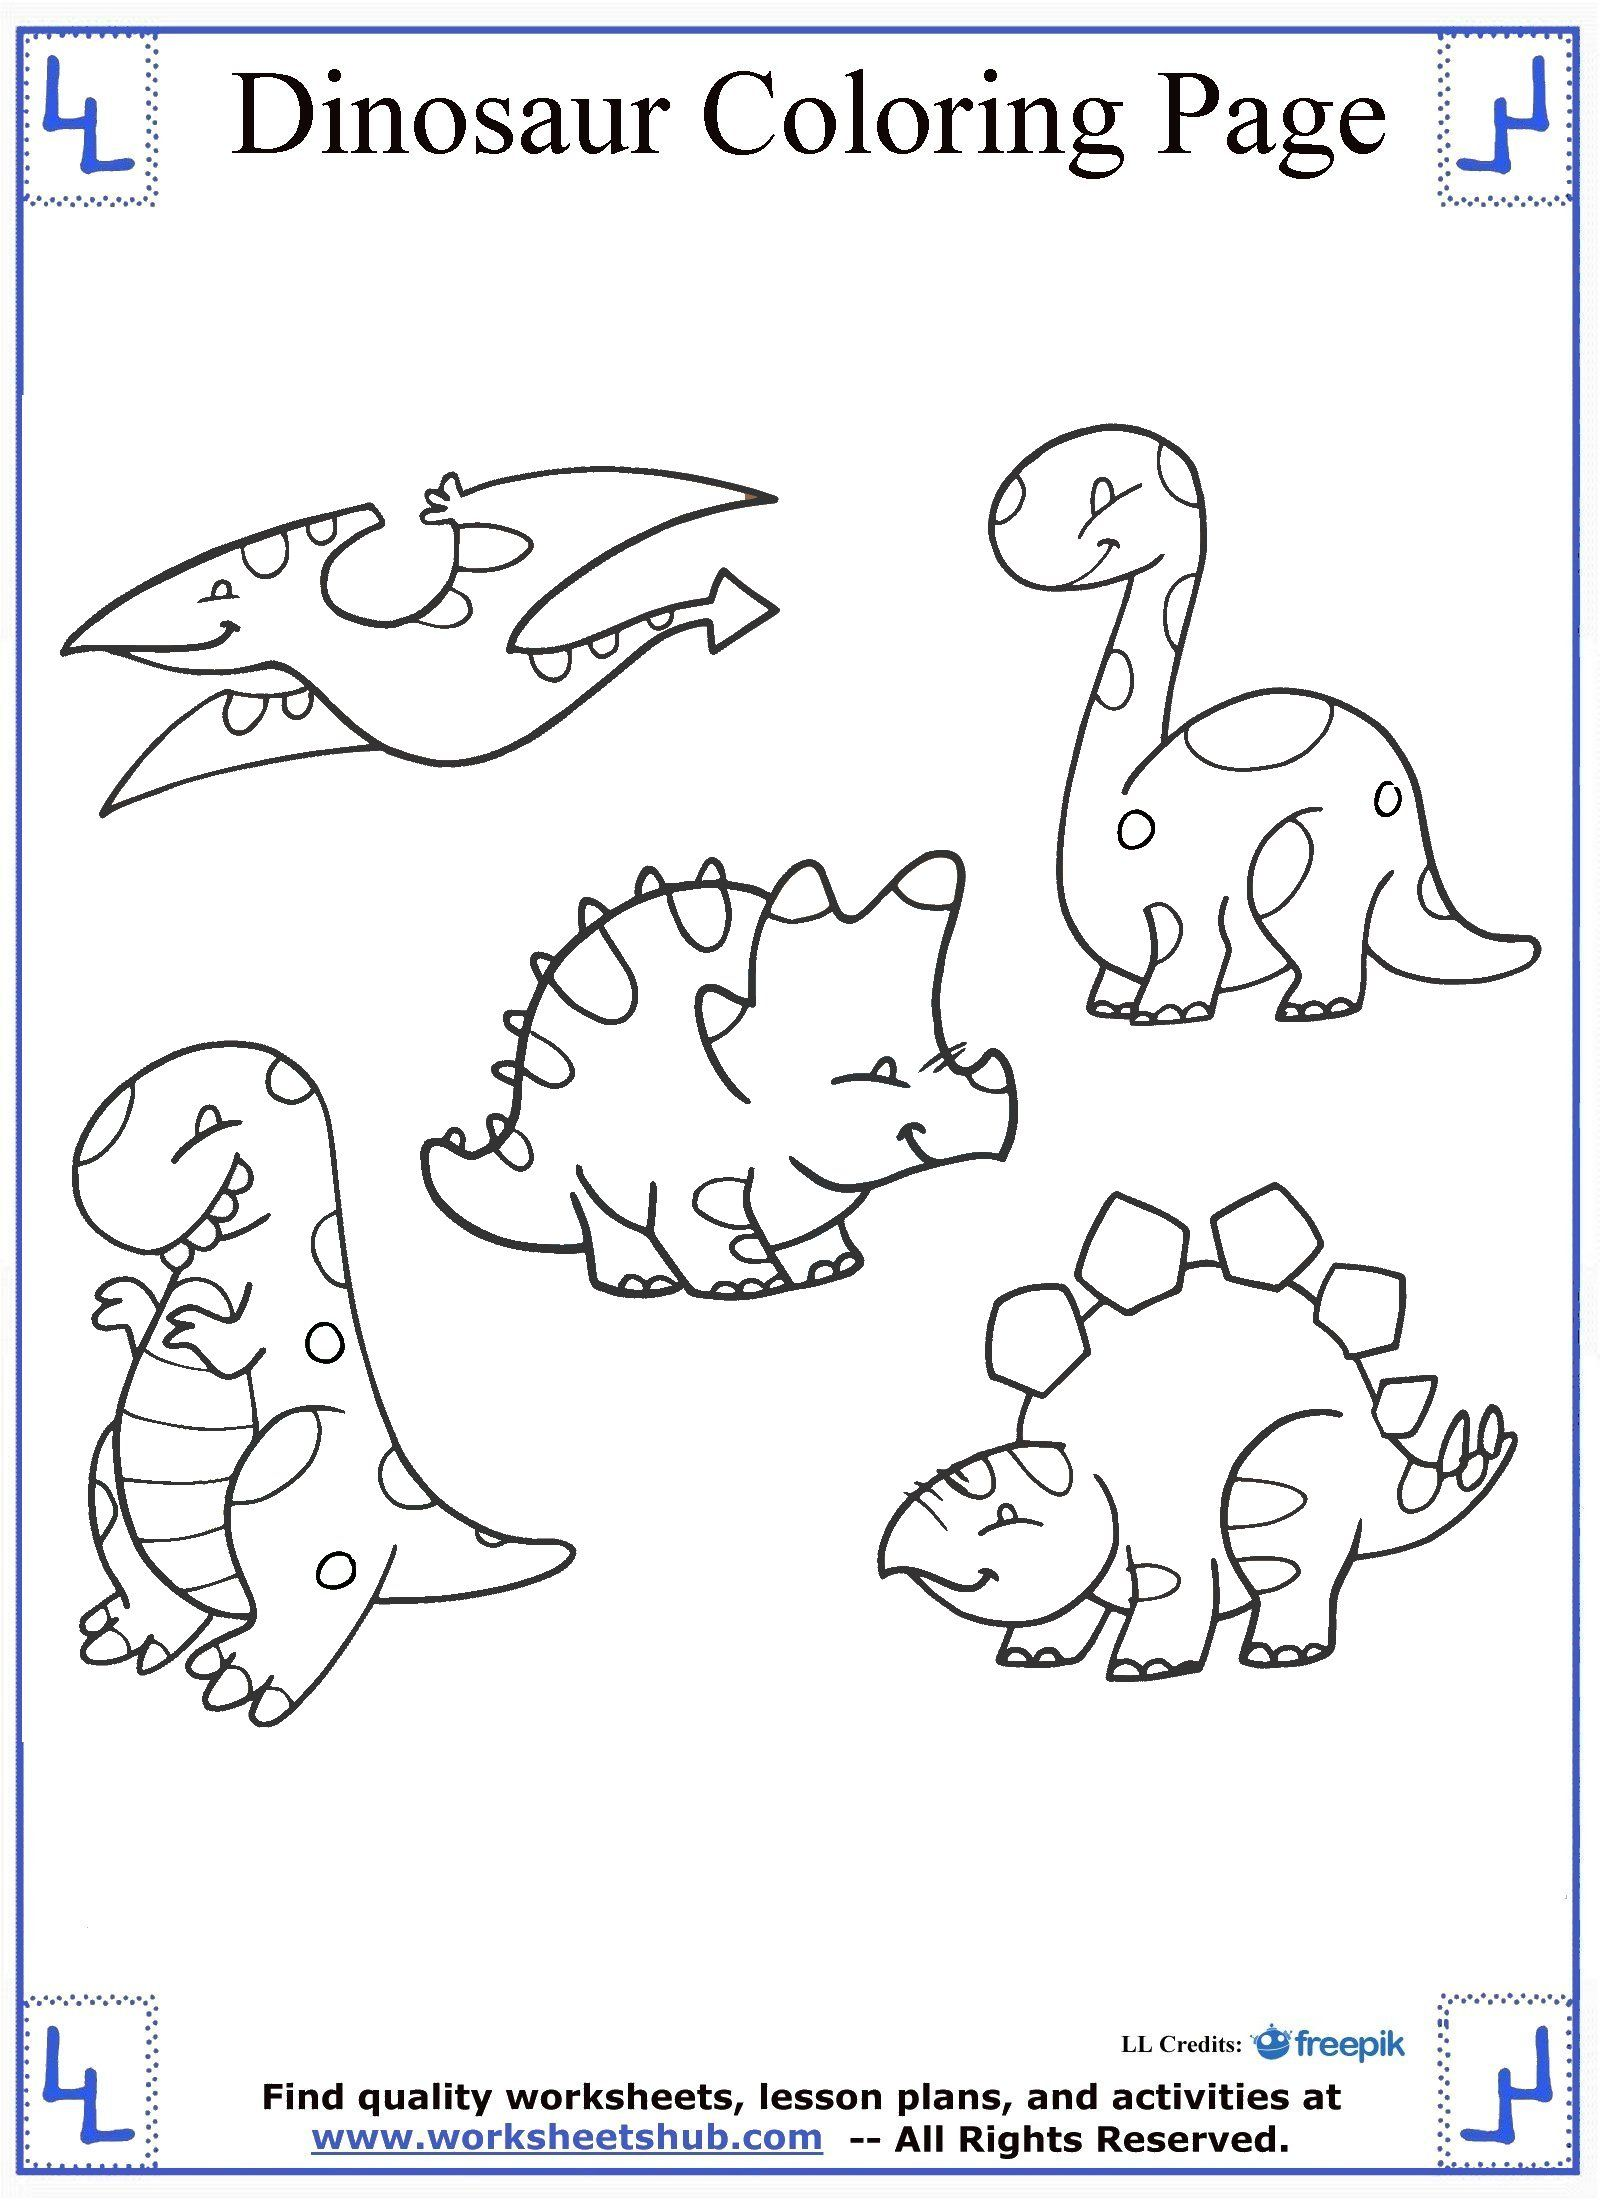 Cute and Cuddly Dinosaur Coloring Page | Dinosaur coloring ...